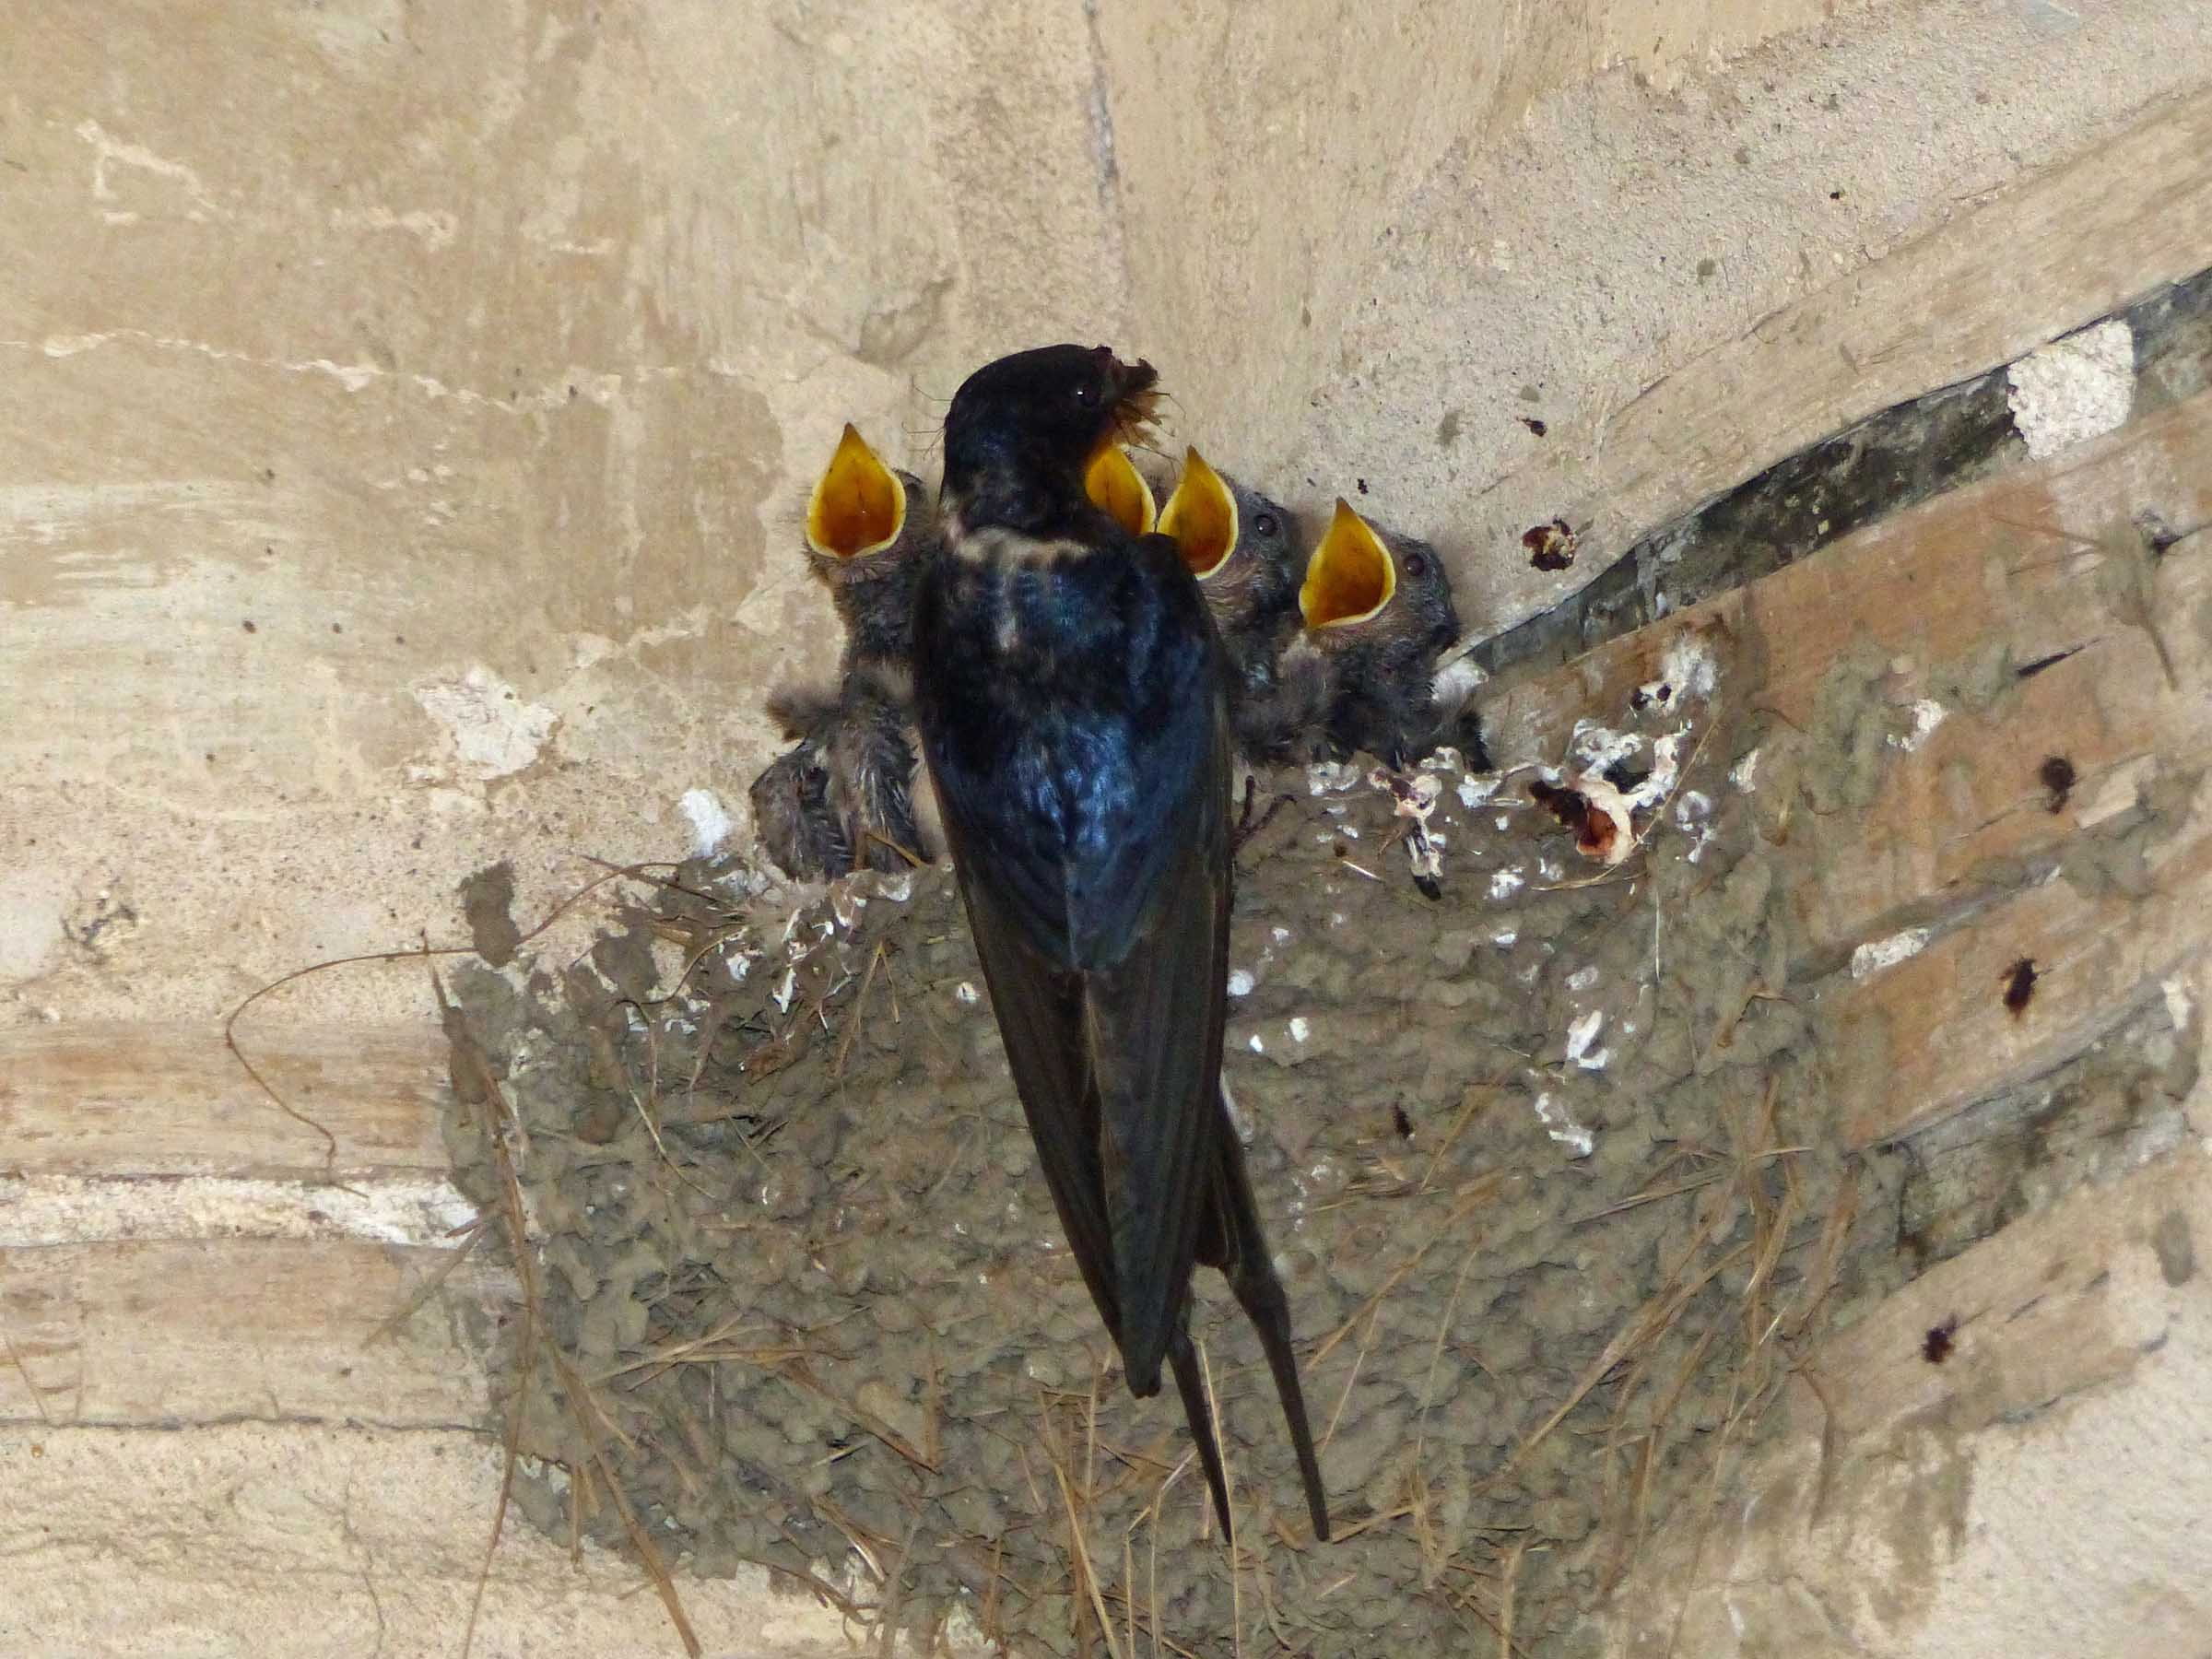 Baby birds in a nest with beaks open and adult feeding them